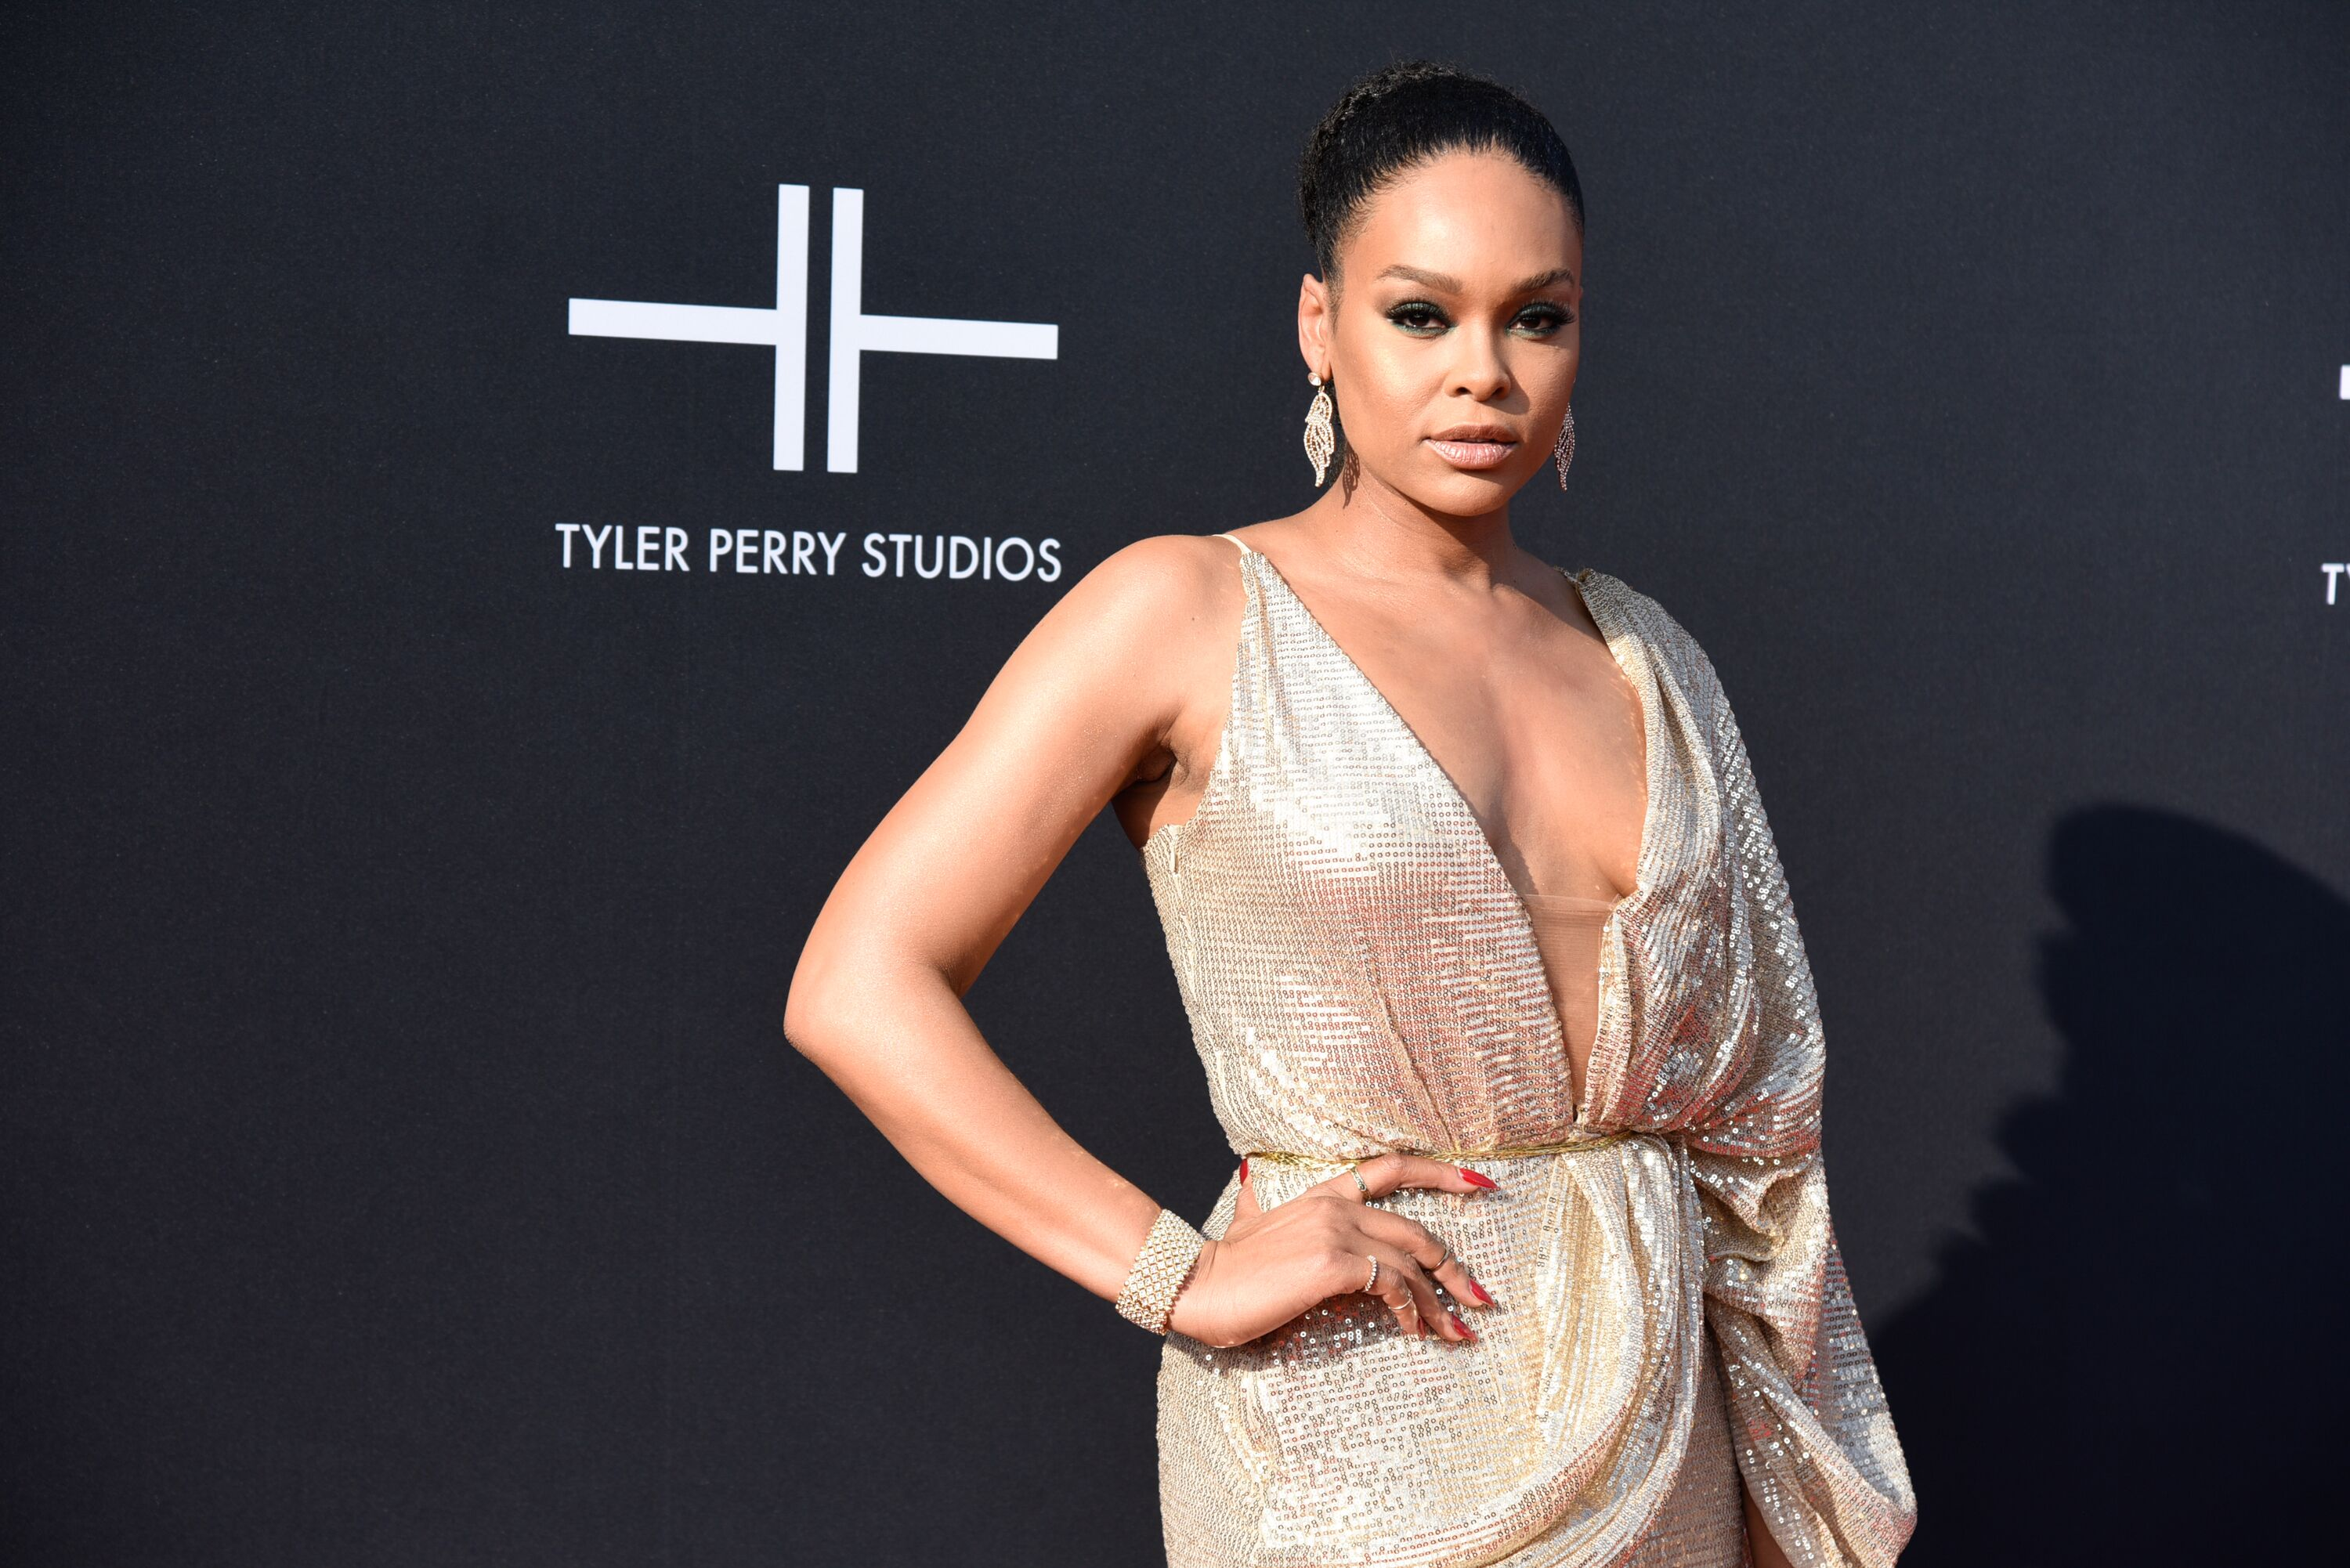 Demetria McKinney attends the Grand Opening Gala of the Tyler Perry Studios | Source: Getty Images/GlobalImagesUkraine